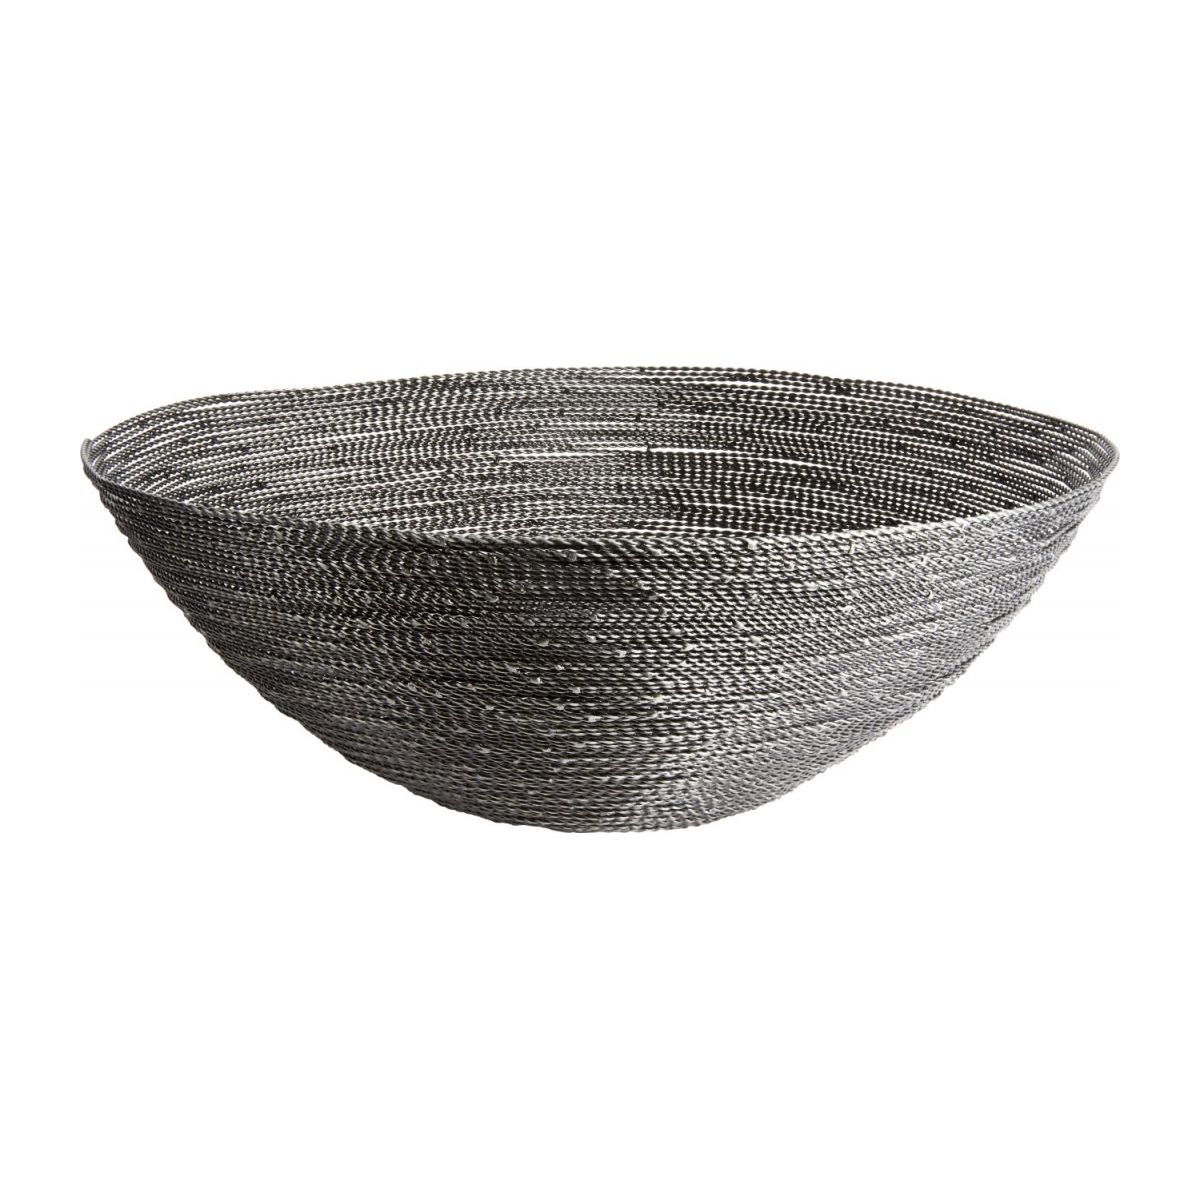 Large grey twisted wire bowl n°1